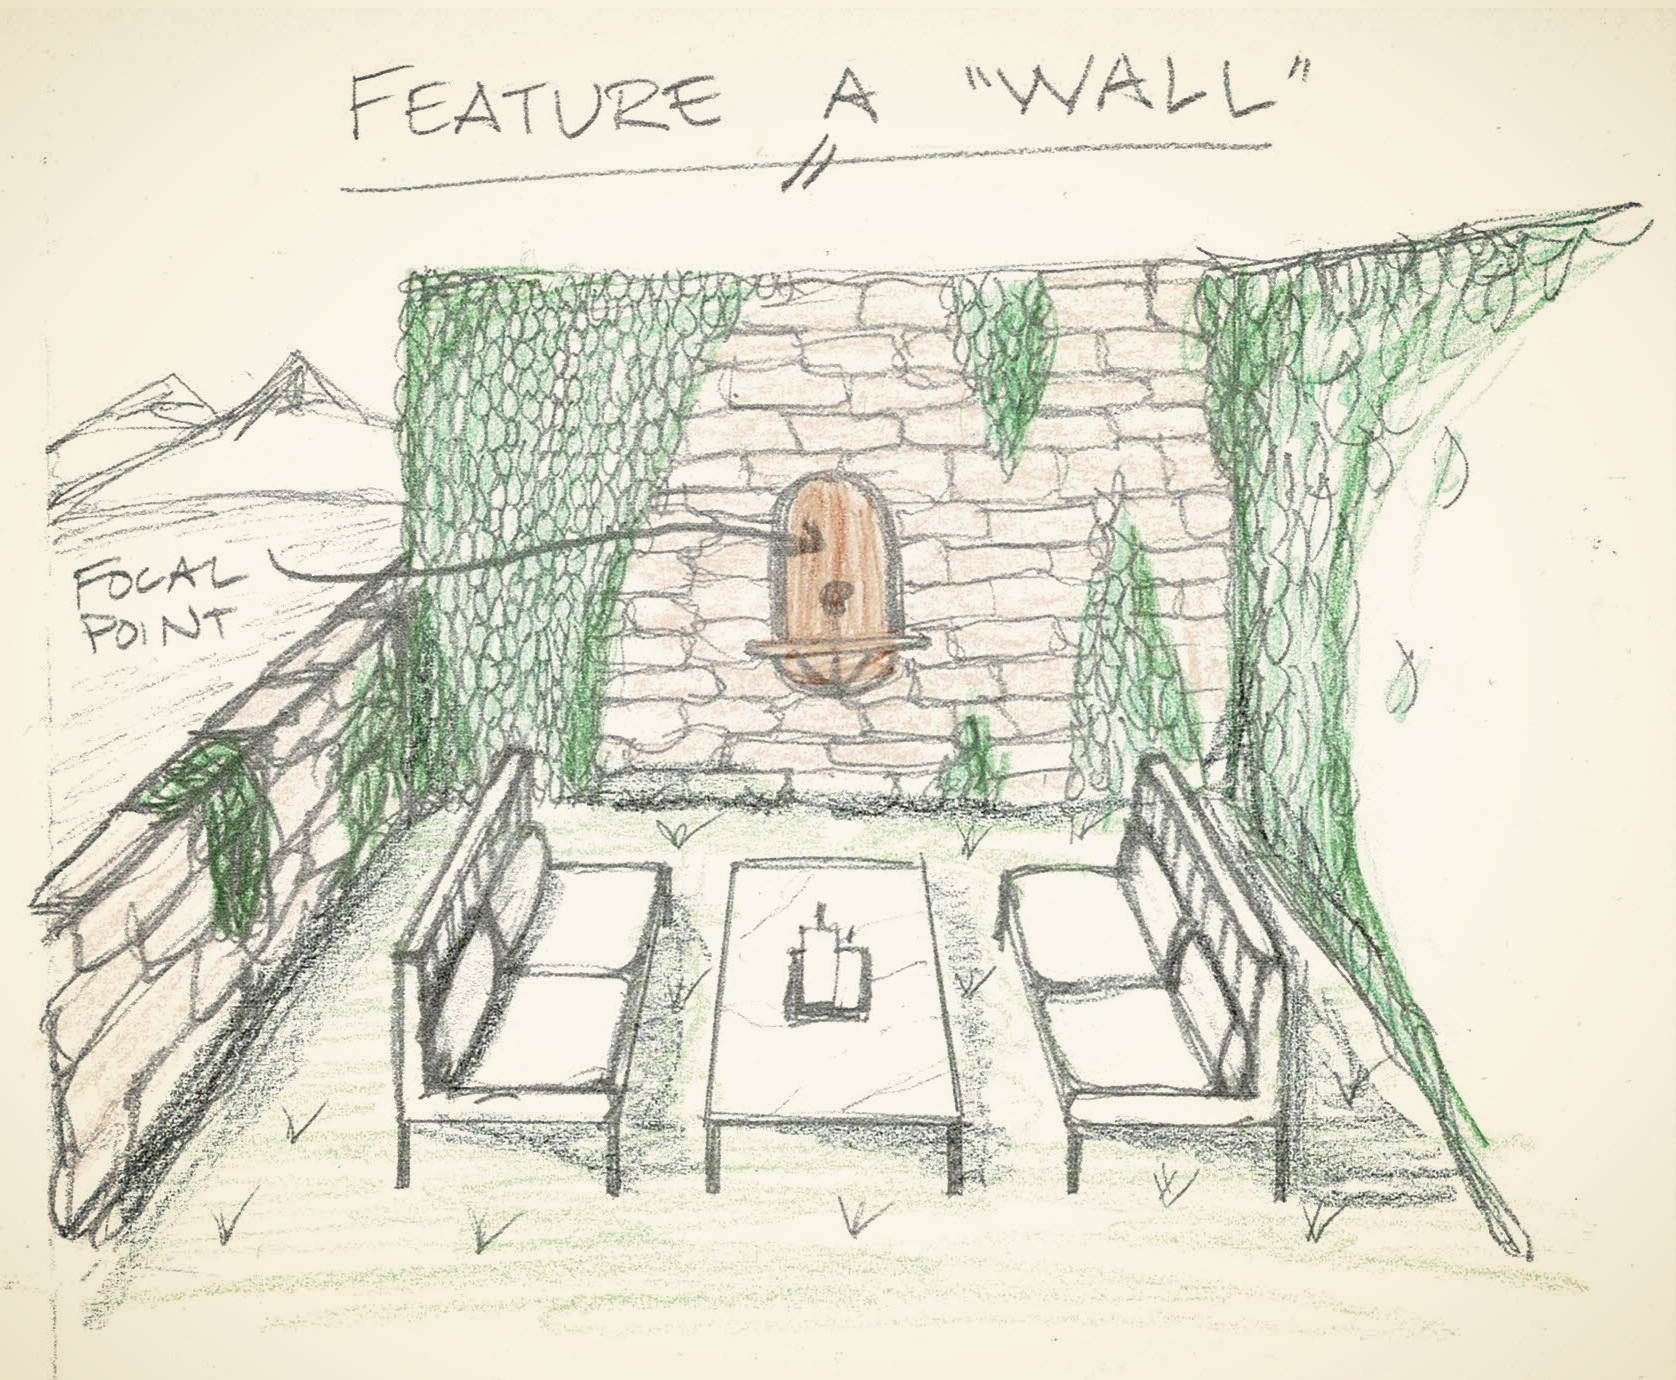 Motiv Monthly - Sketch - 2018.04.30 - Feature a Wall.jpg